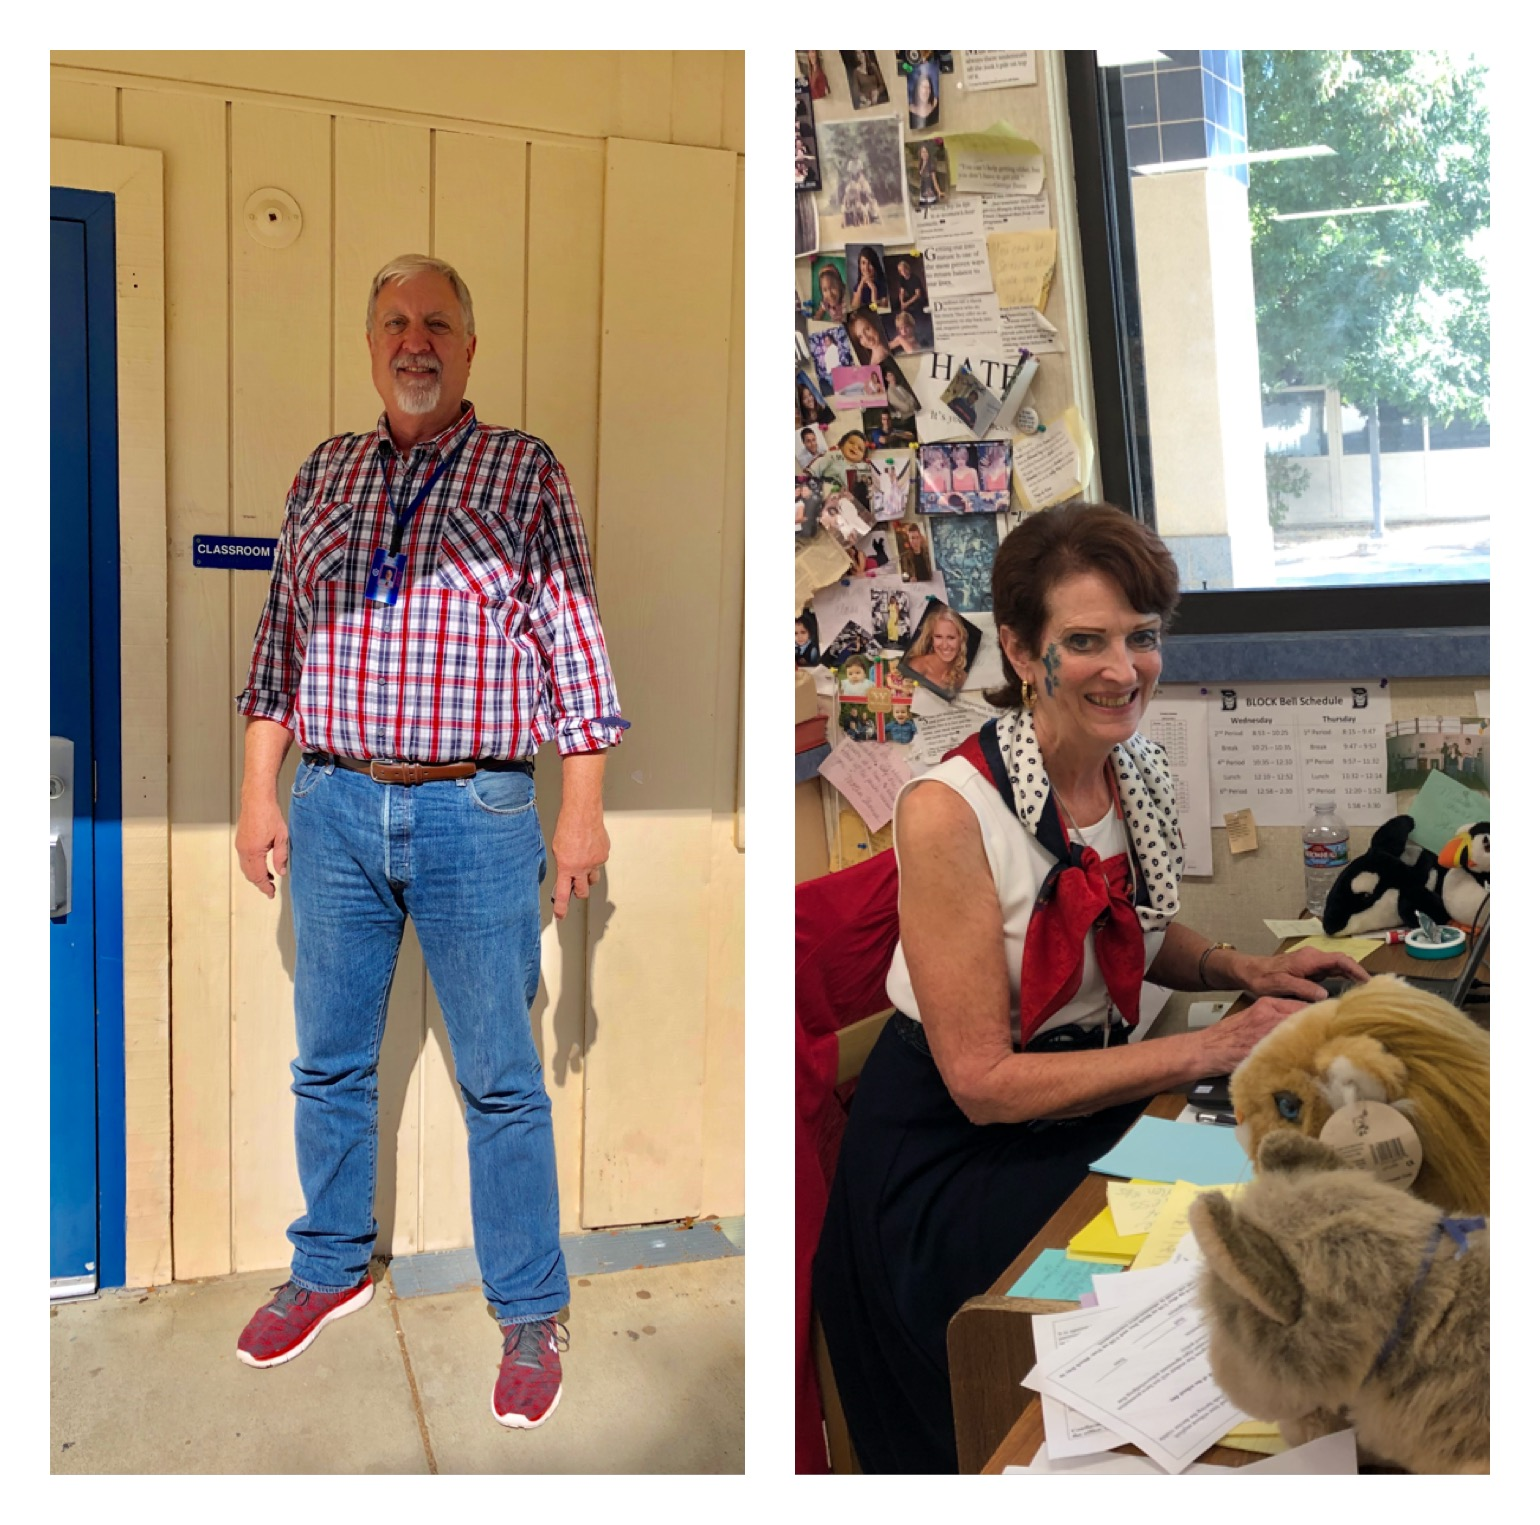 Teachers look forward to a fun homecoming week